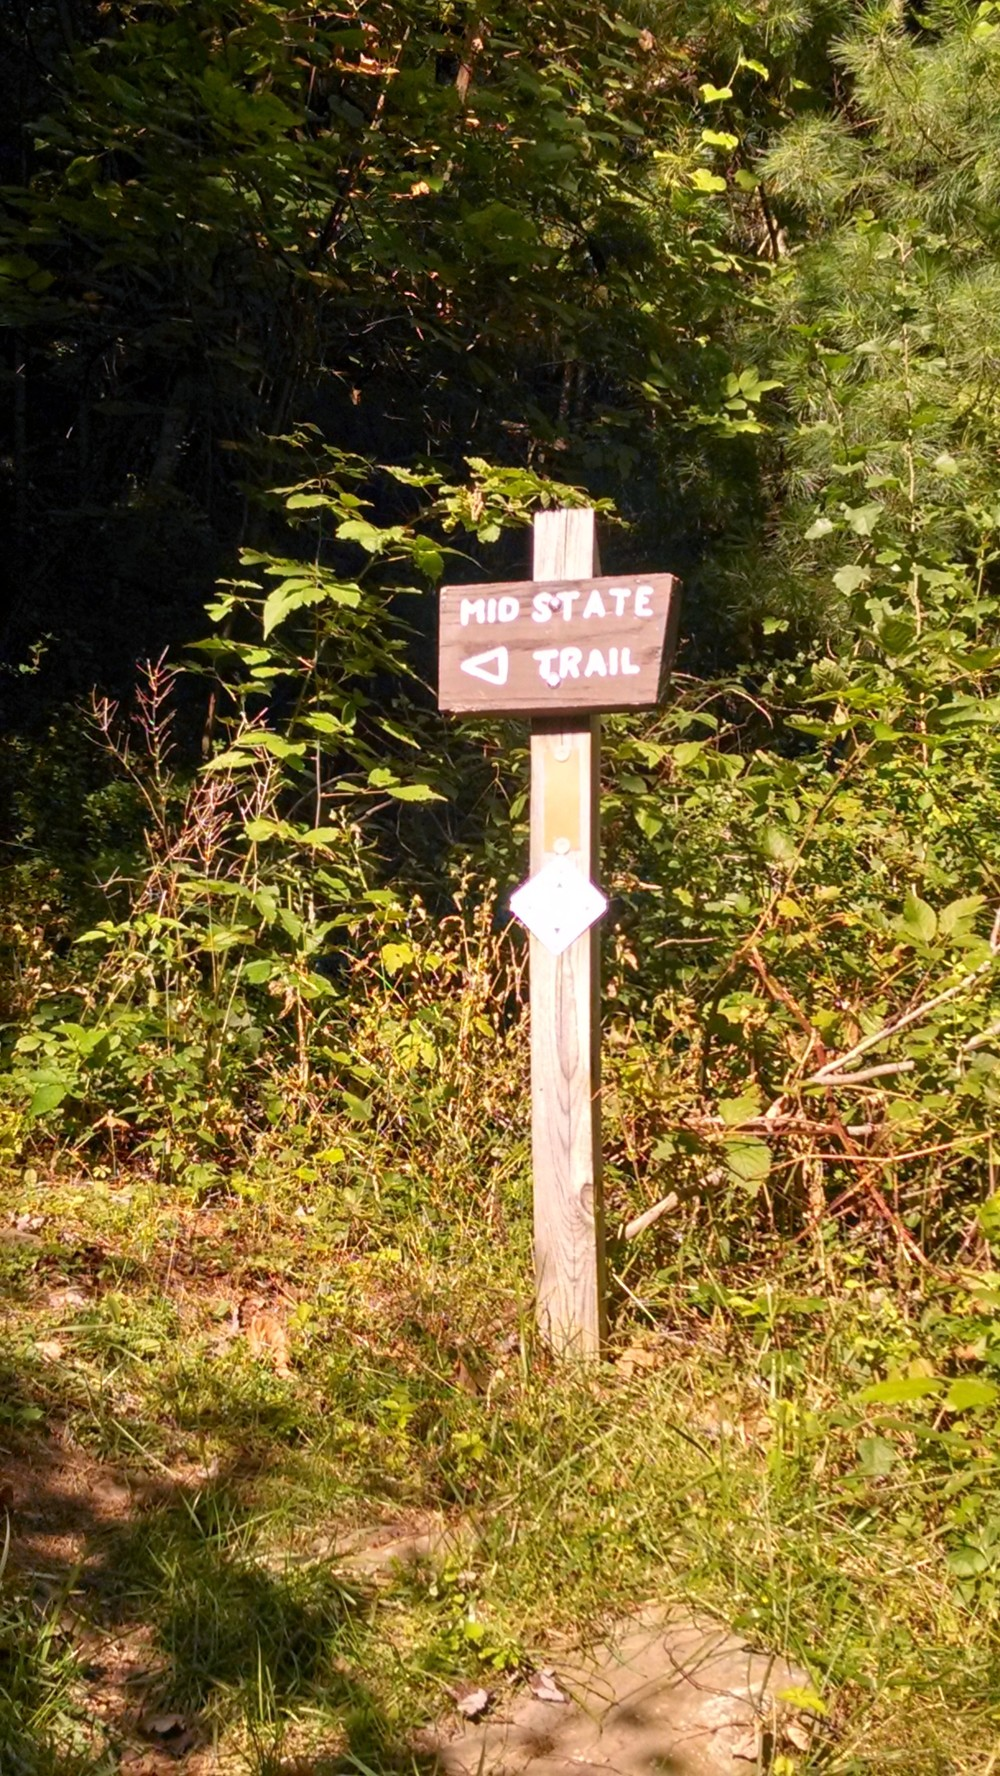 We have access to the  Mid State Trail  and various offshoot trails near the entrance of Ramsey Village.